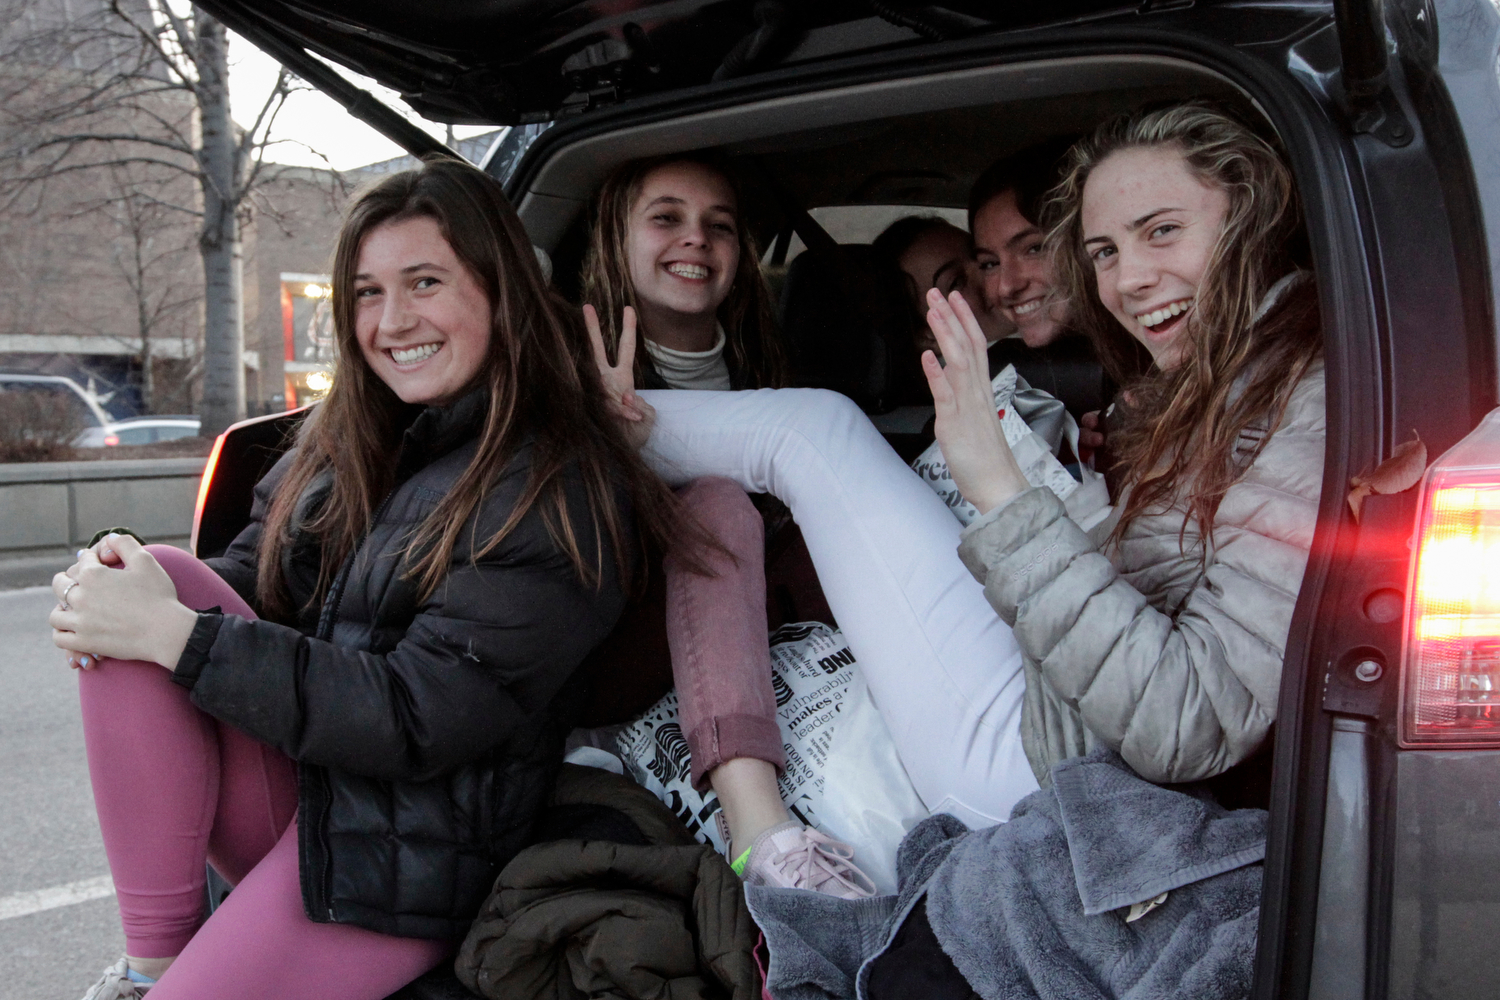 Students pack the back of an SUV after class on Roosevelt Road near the Flames Athletic Center.